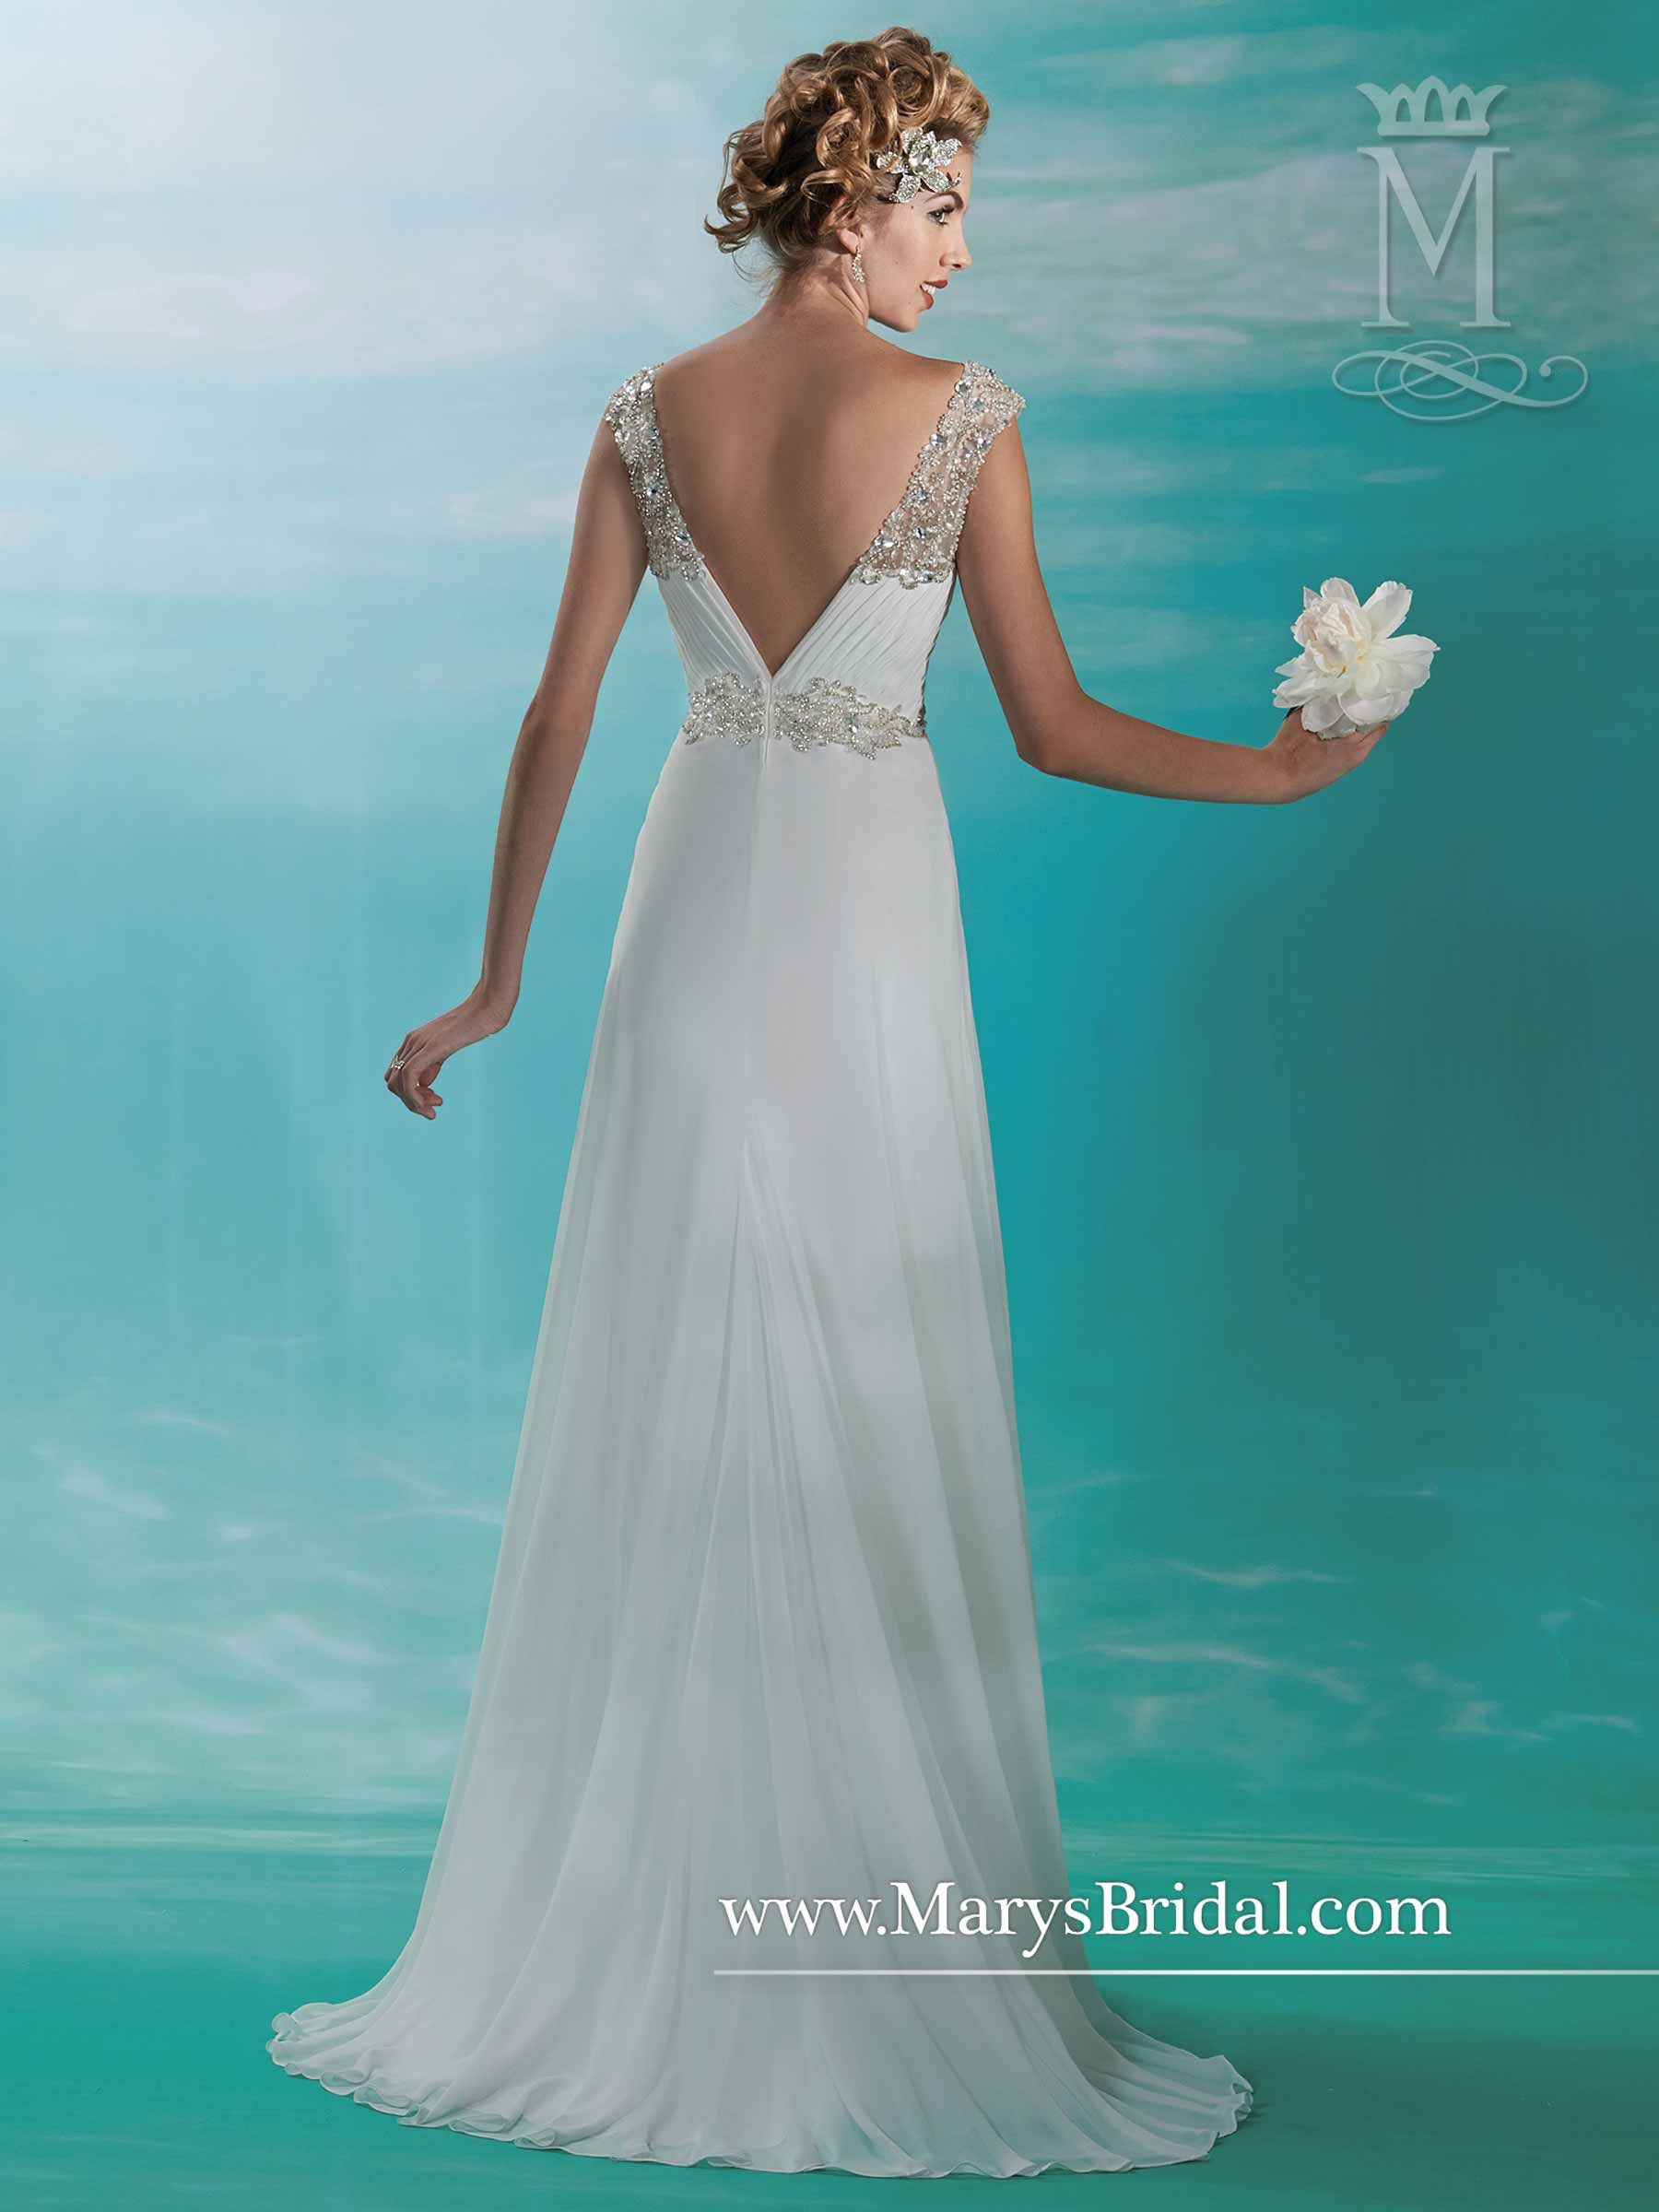 Bridal Dresses | Style - 3Y370 in Ivory/Multi, White/Multi Color